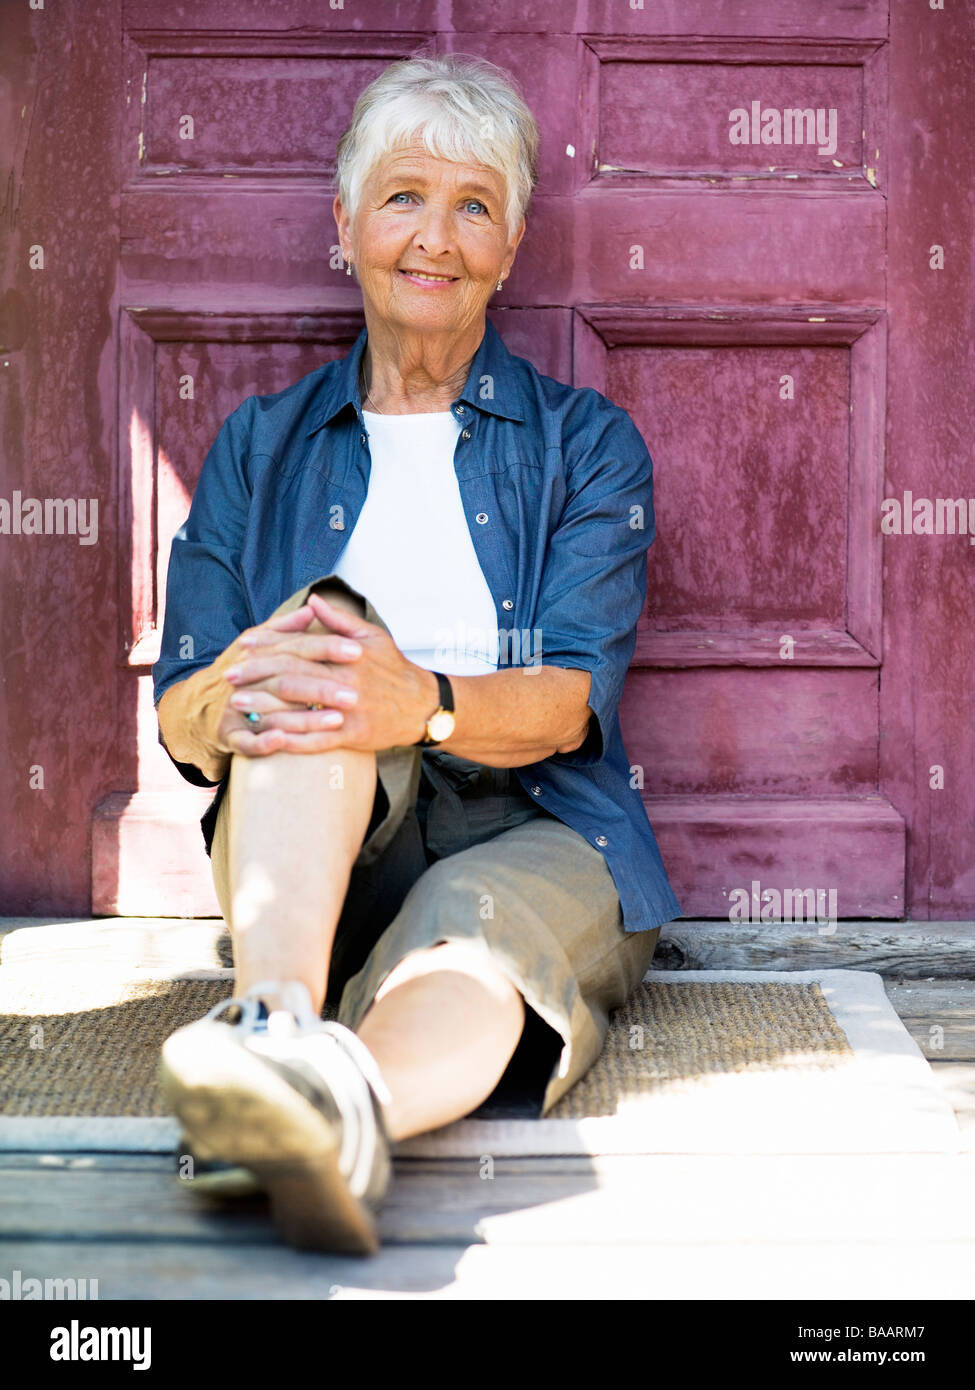 A woman sitting in front of a door, Stockholm, Sweden. - Stock Image